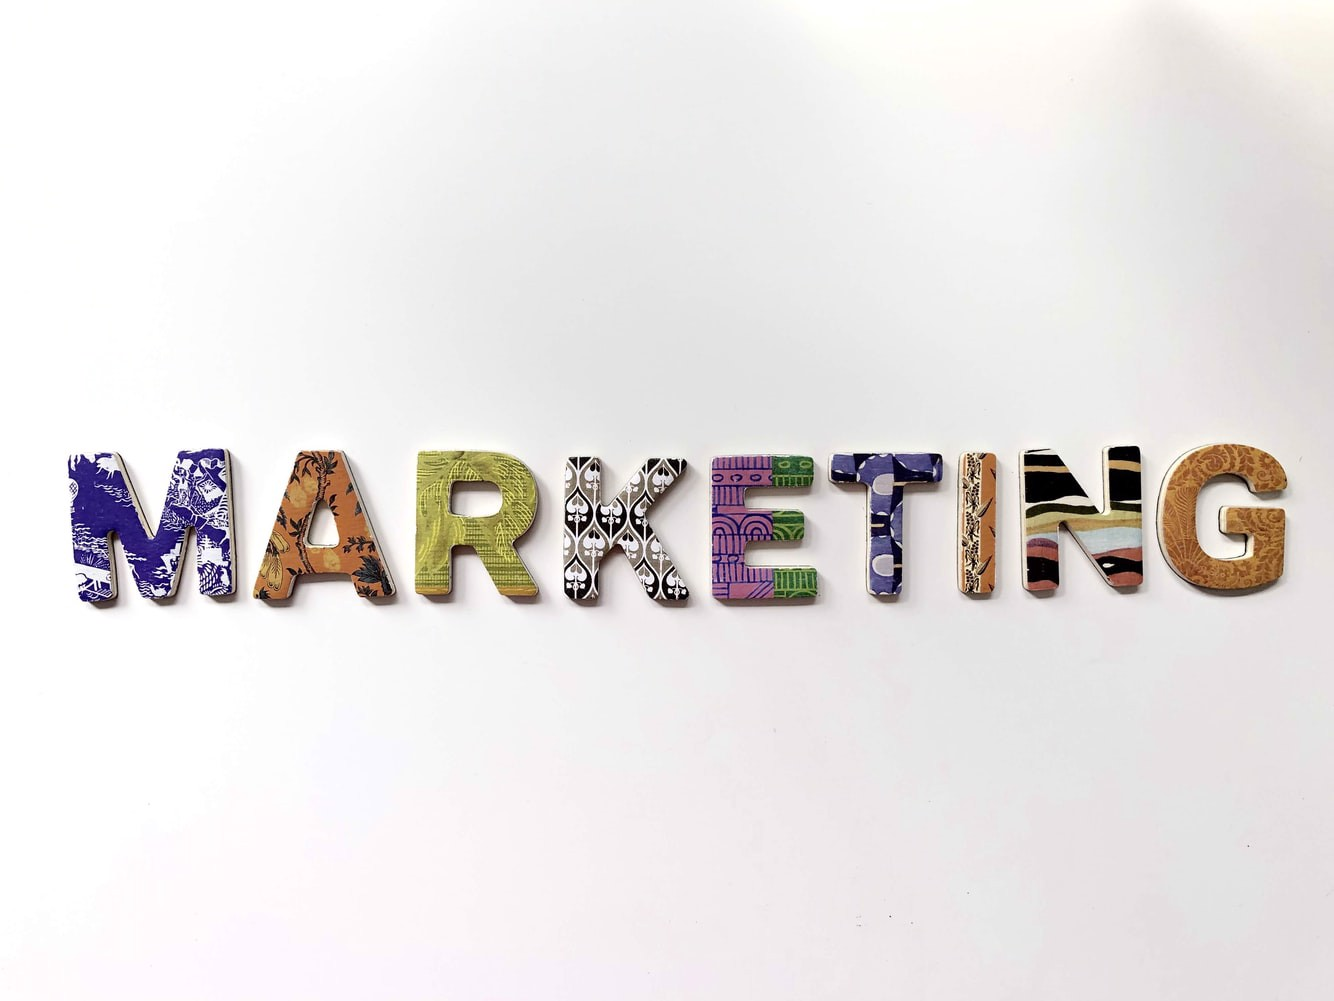 17 Essential Marketing Skills Every Marketer Should Master